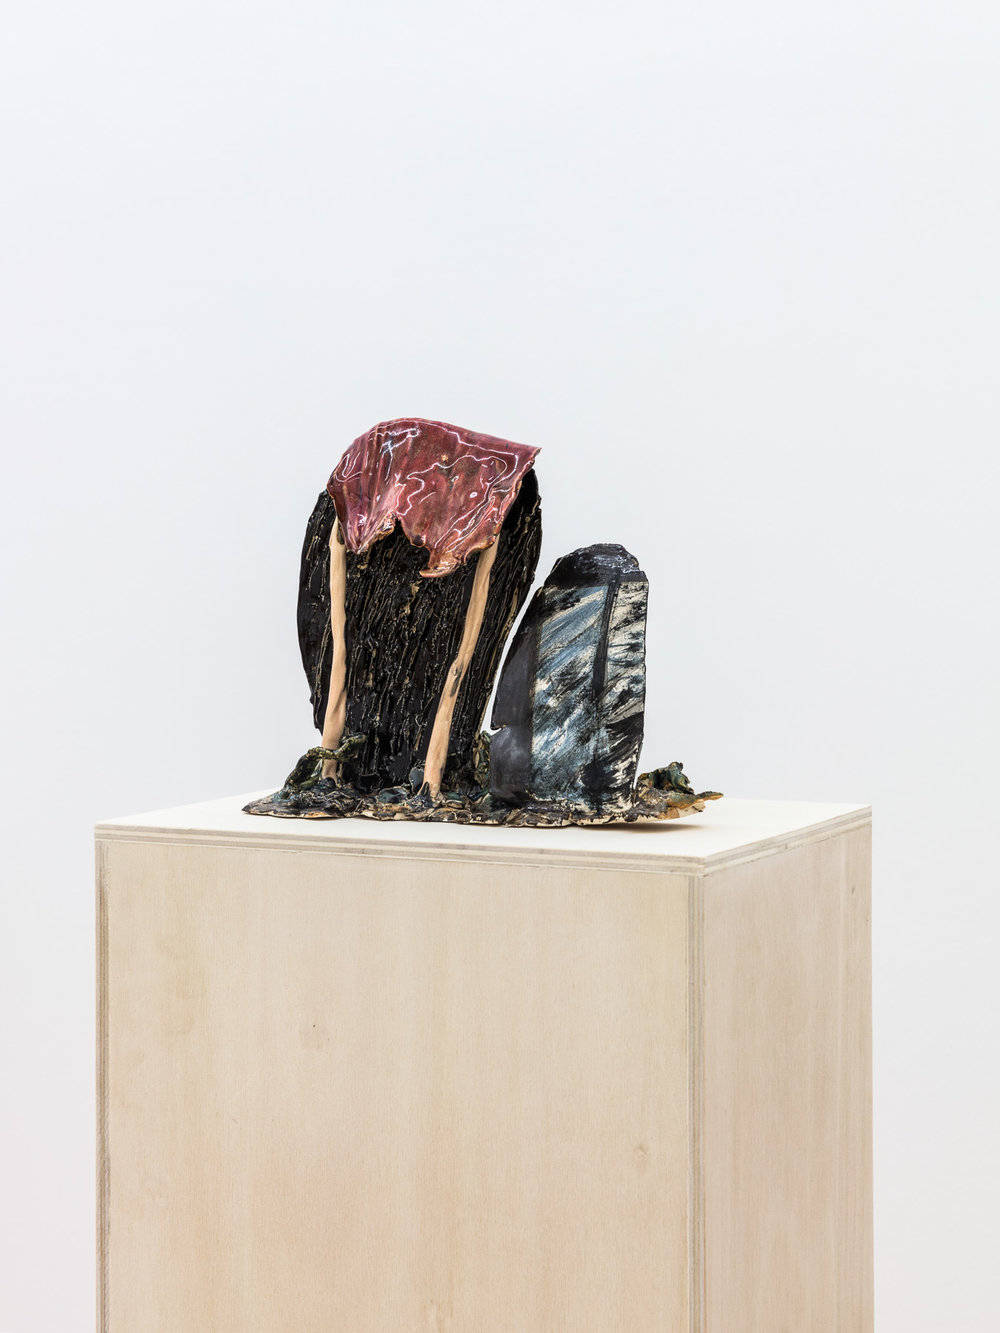 Veronika Hilger, untitled, 2017, ceramic, glazed, 22,2 x 27 x 11,7 cm